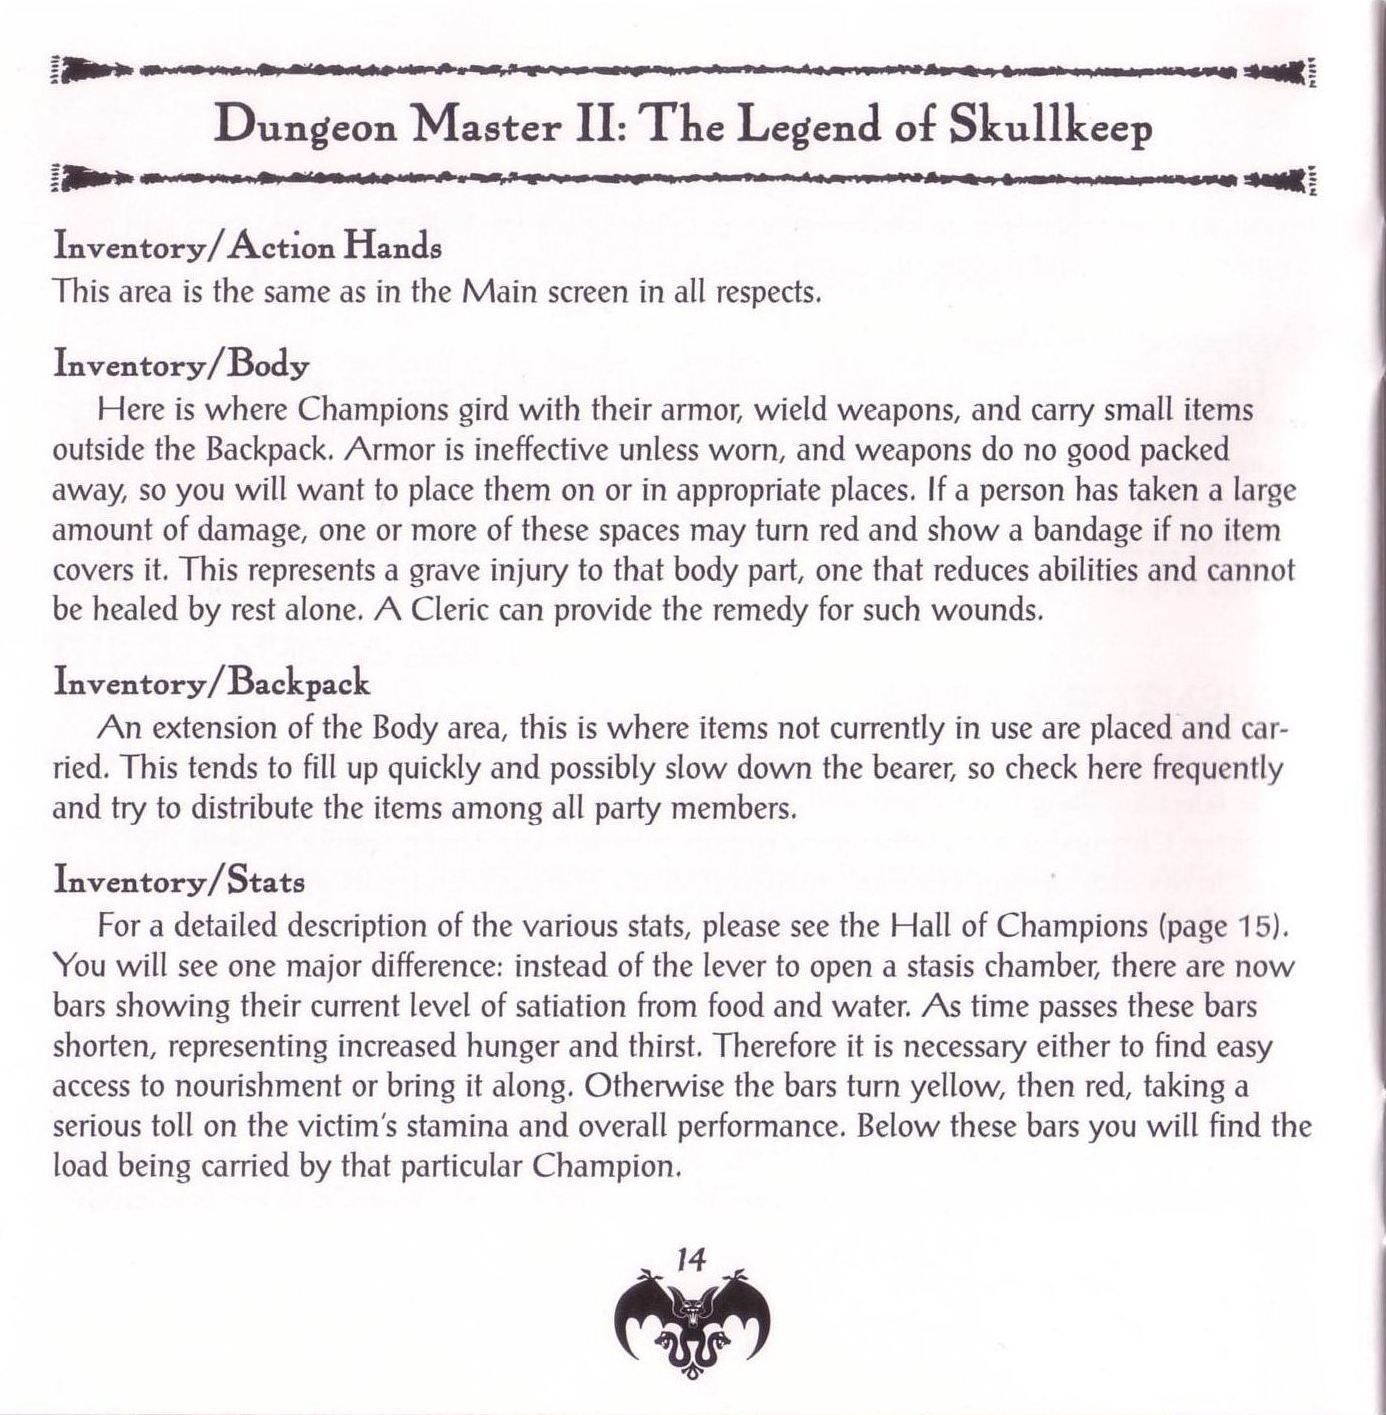 Game - Dungeon Master II - US - PC - Jewel Case - Booklet - Page 016 - Scan